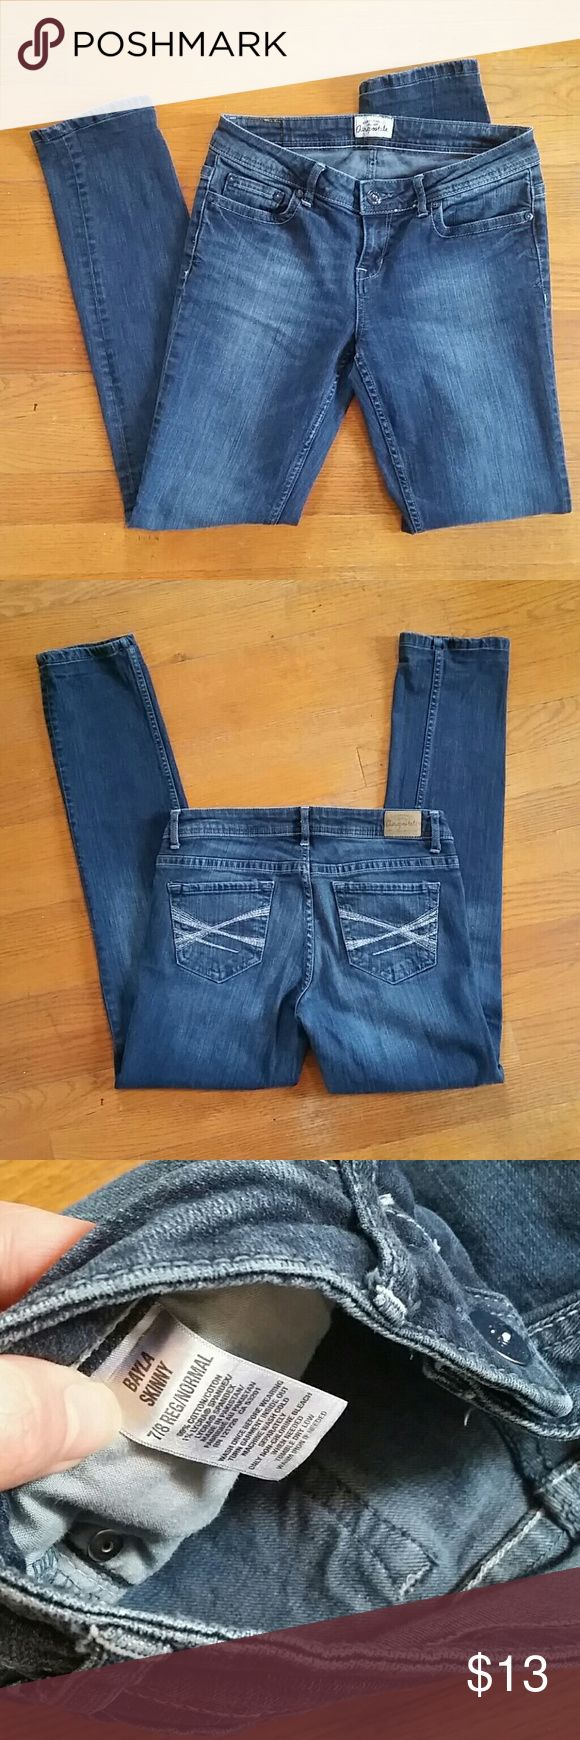 """Aeropostale Bayla Skinny Jeans Worn only 3 times. Wonderful condition, no stains or rips. Tag says size 7/8. But i wear a size 9 and these fit great and snug on me like leggings. Waist measurement lying flat is 14.75"""". Inseam is 30"""".  And the Ankle Leg opening is almost 6"""". Jean material, thicker than normal leggings, feels well made. Wonderful jeans! Aeropostale Jeans Skinny"""